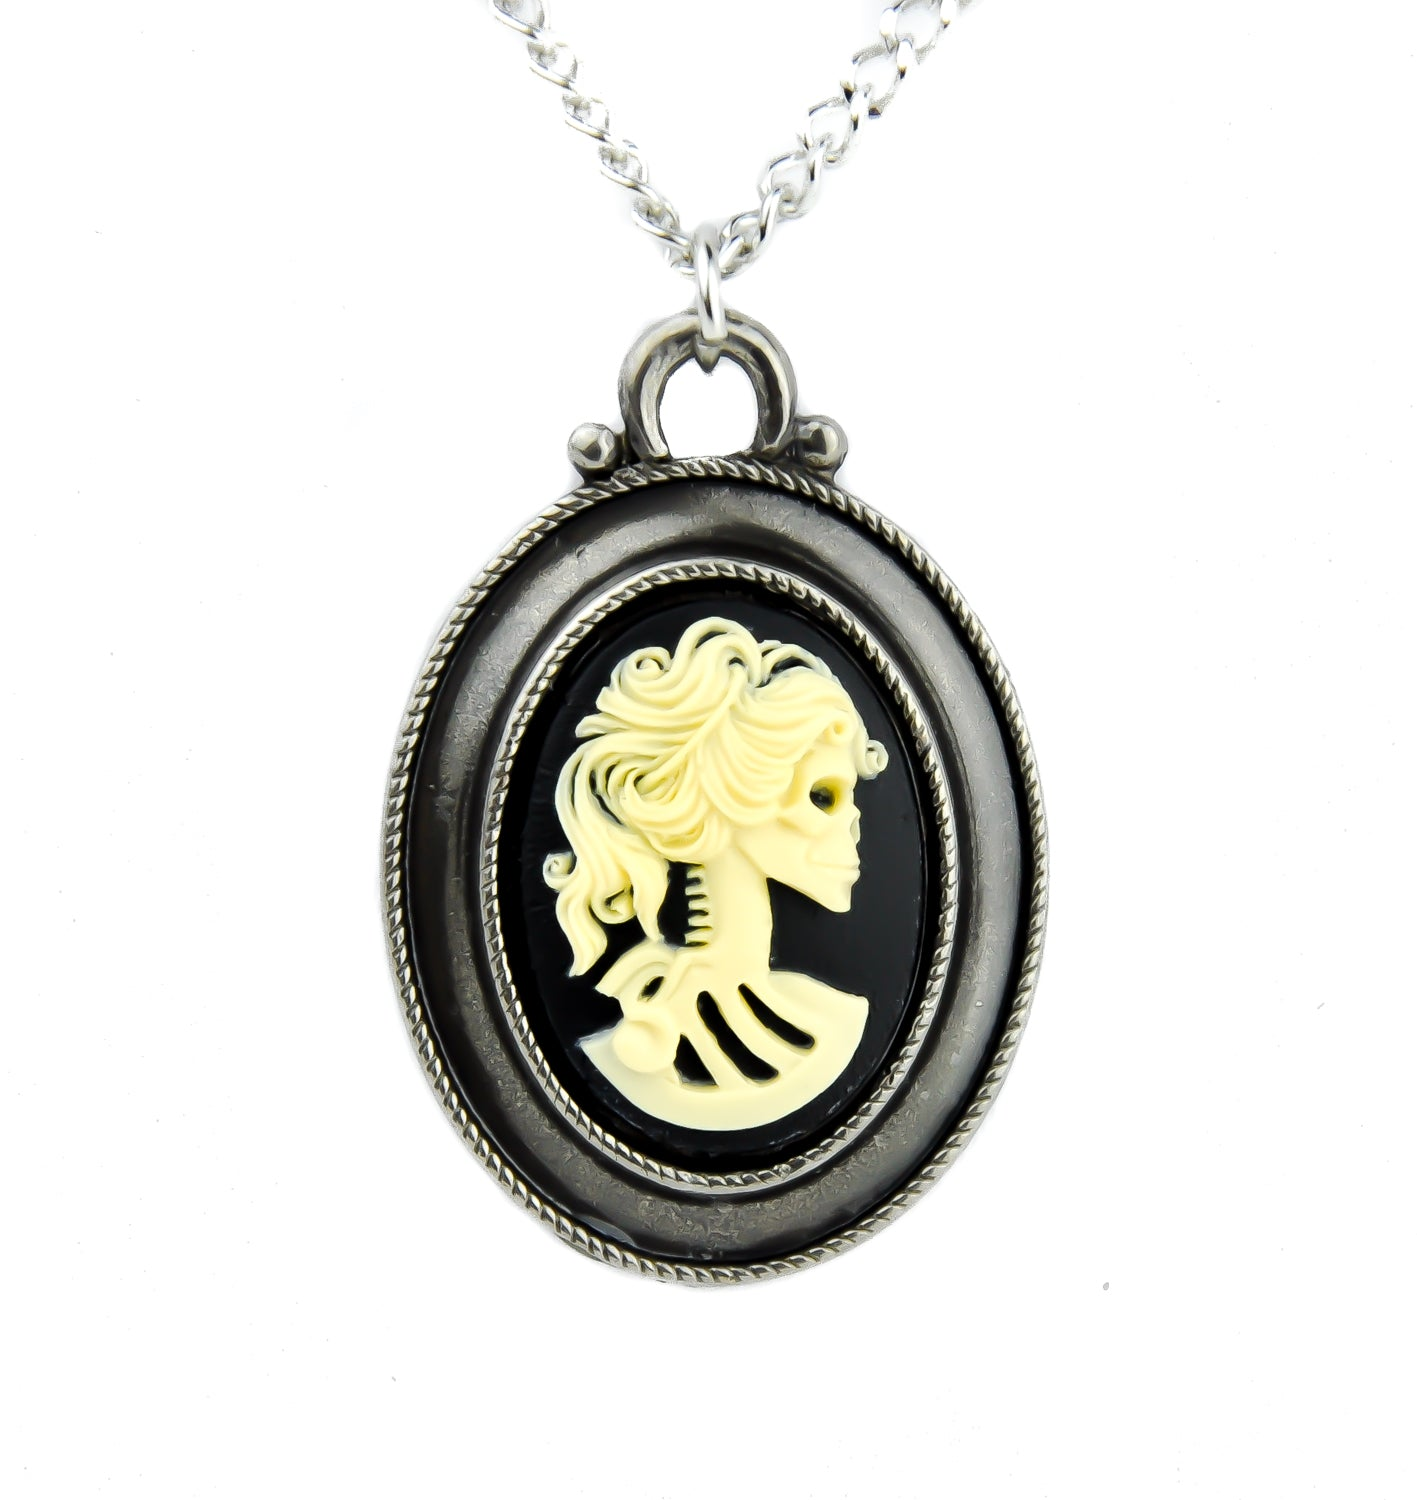 Antique Silver Color Skeleton Cameo Necklace Victorian Dead Girl Halloween Jewelry